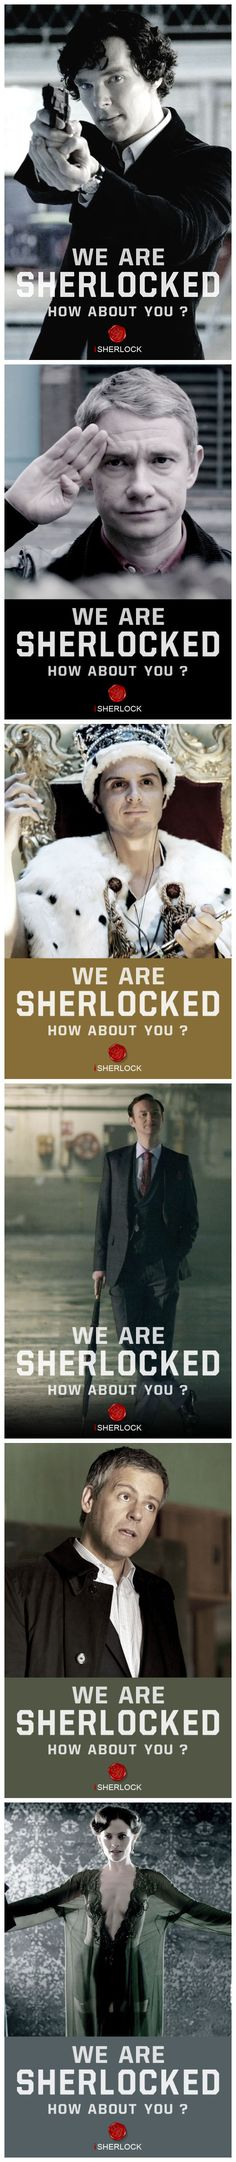 We are Sherlocked